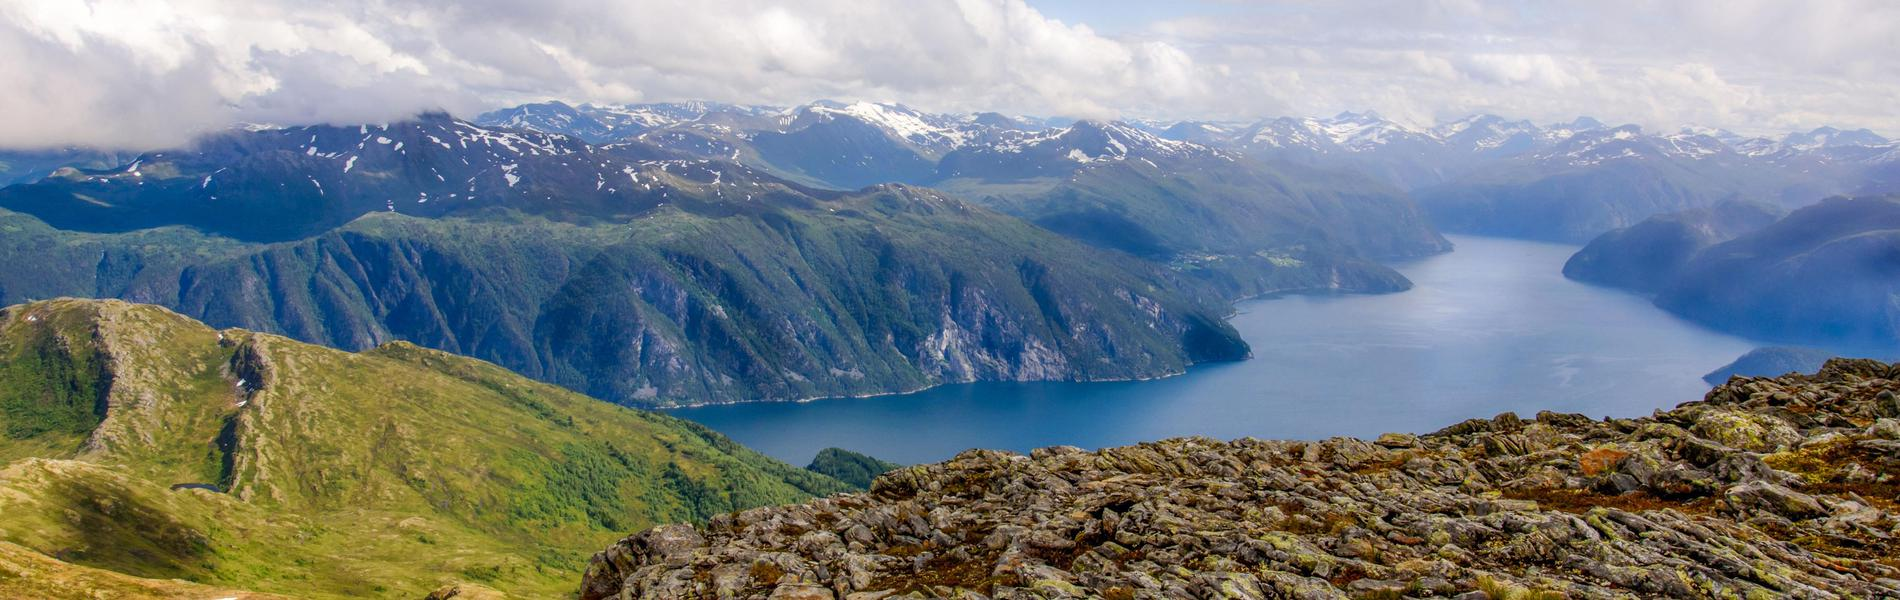 Fjordlandschaft in Norwegen